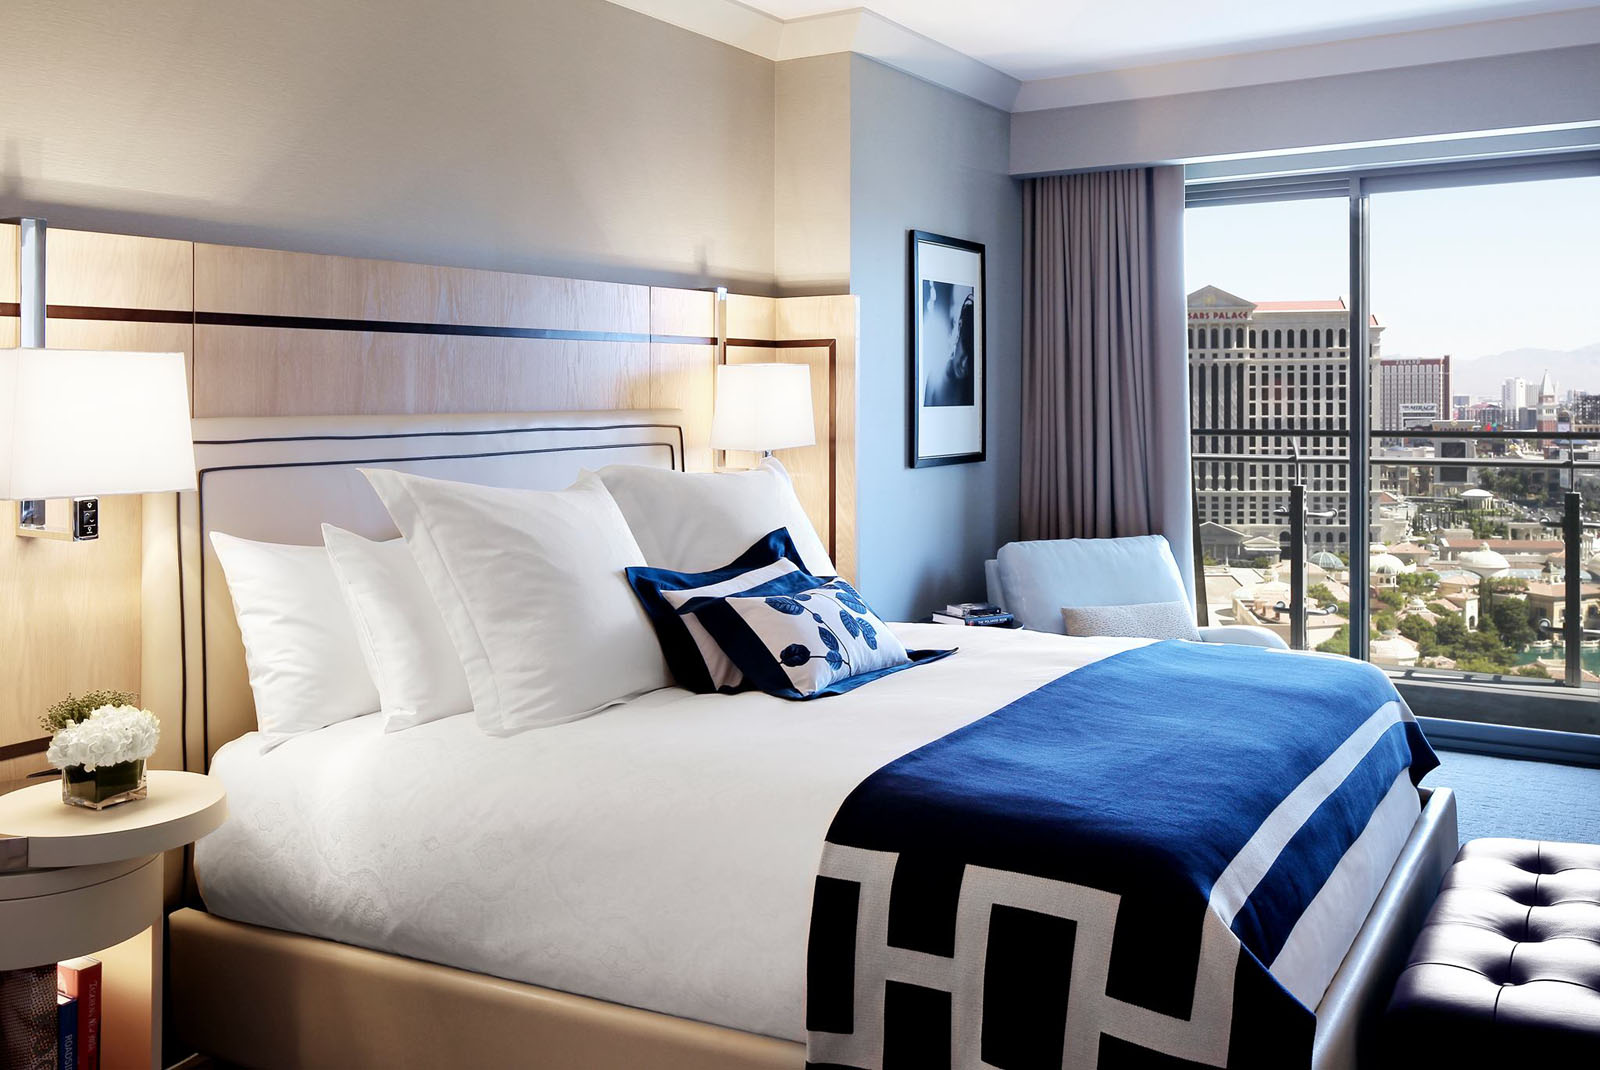 Modern Hotel Room swanky hotel interior design: the cosmopolitan of las vegas